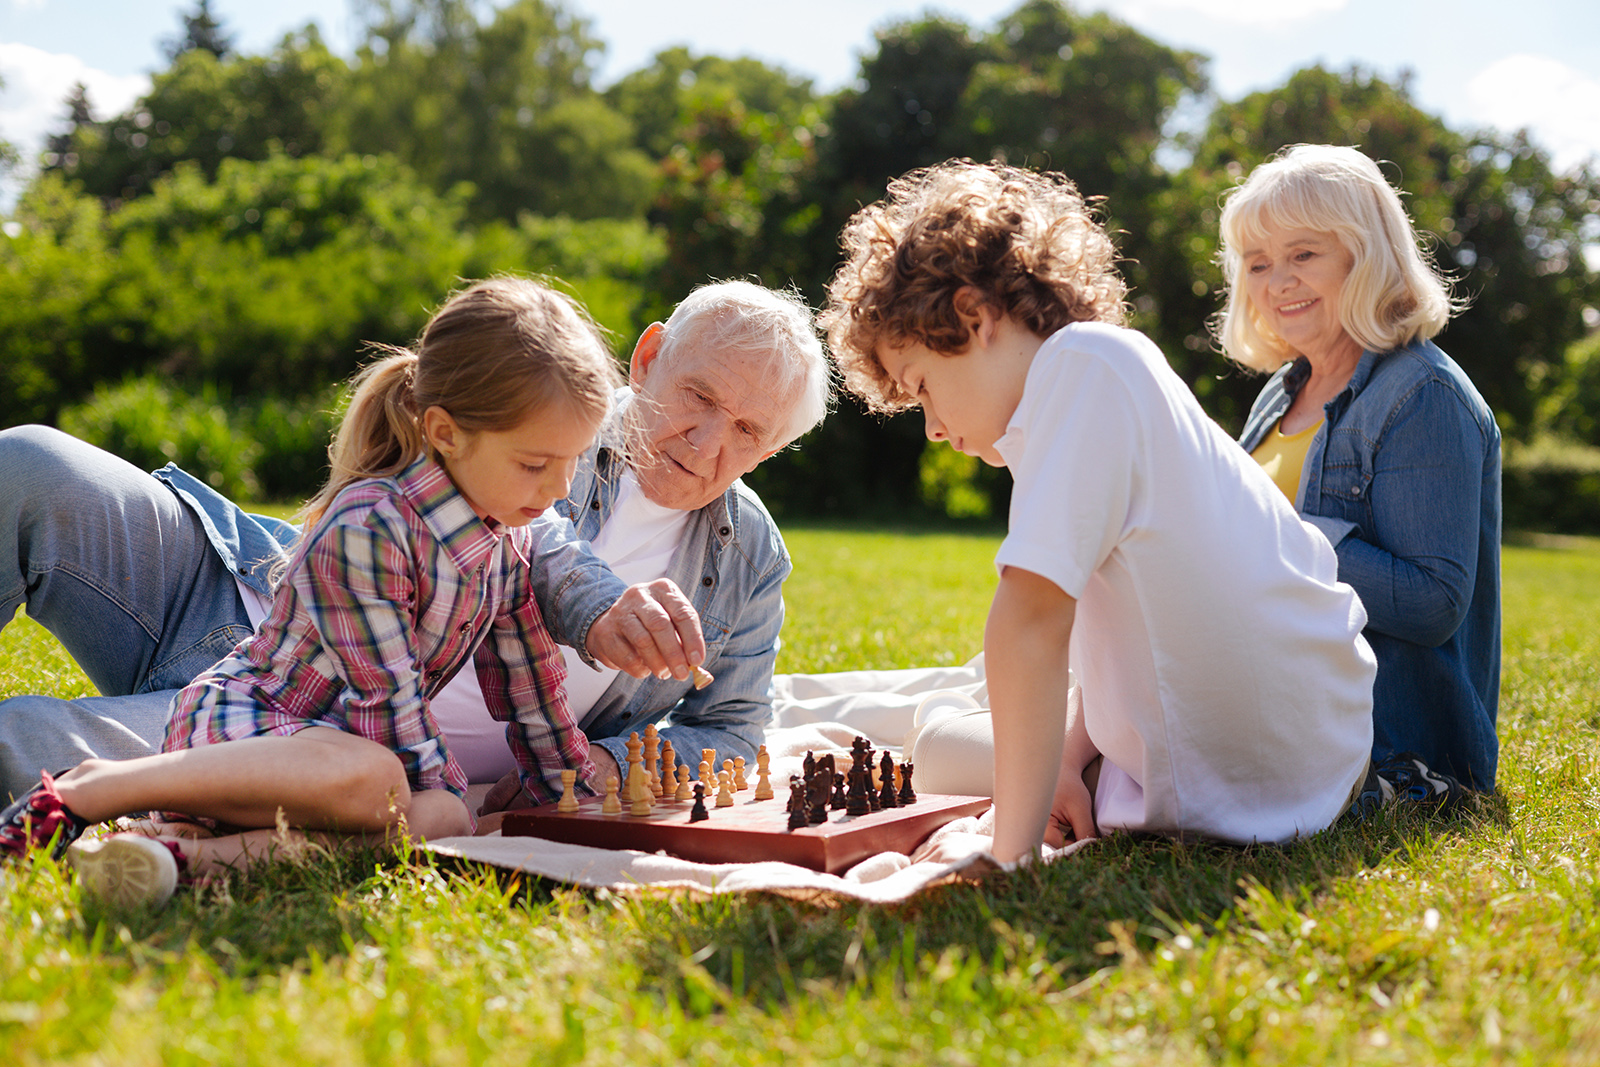 Grandparents sitting in the grass playing chess with their grandchildren